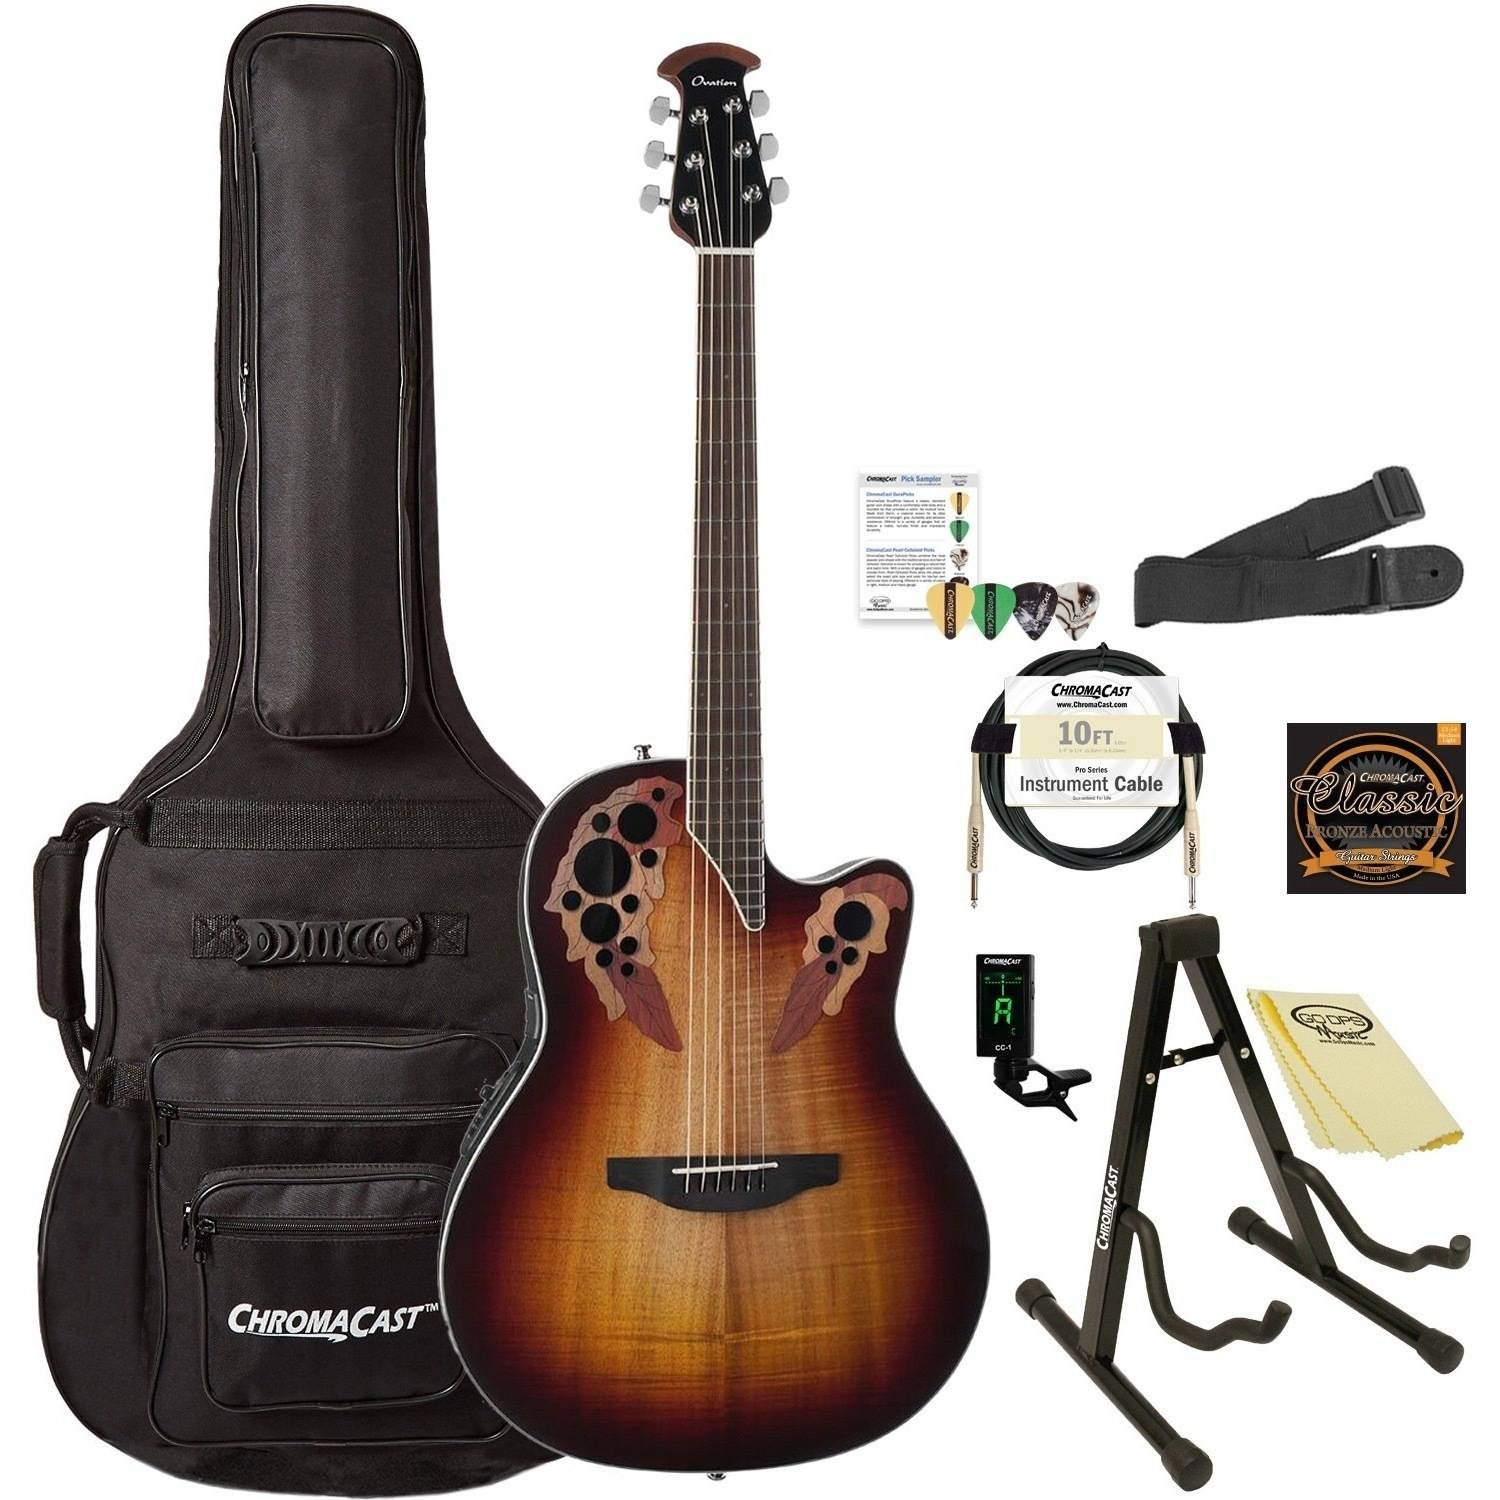 Ovation Celebrity Elite Plus CE48P-KOAB Super Shallow Acoustic-Electric Guitar (Koa Burst) with ChromaCast Accessories